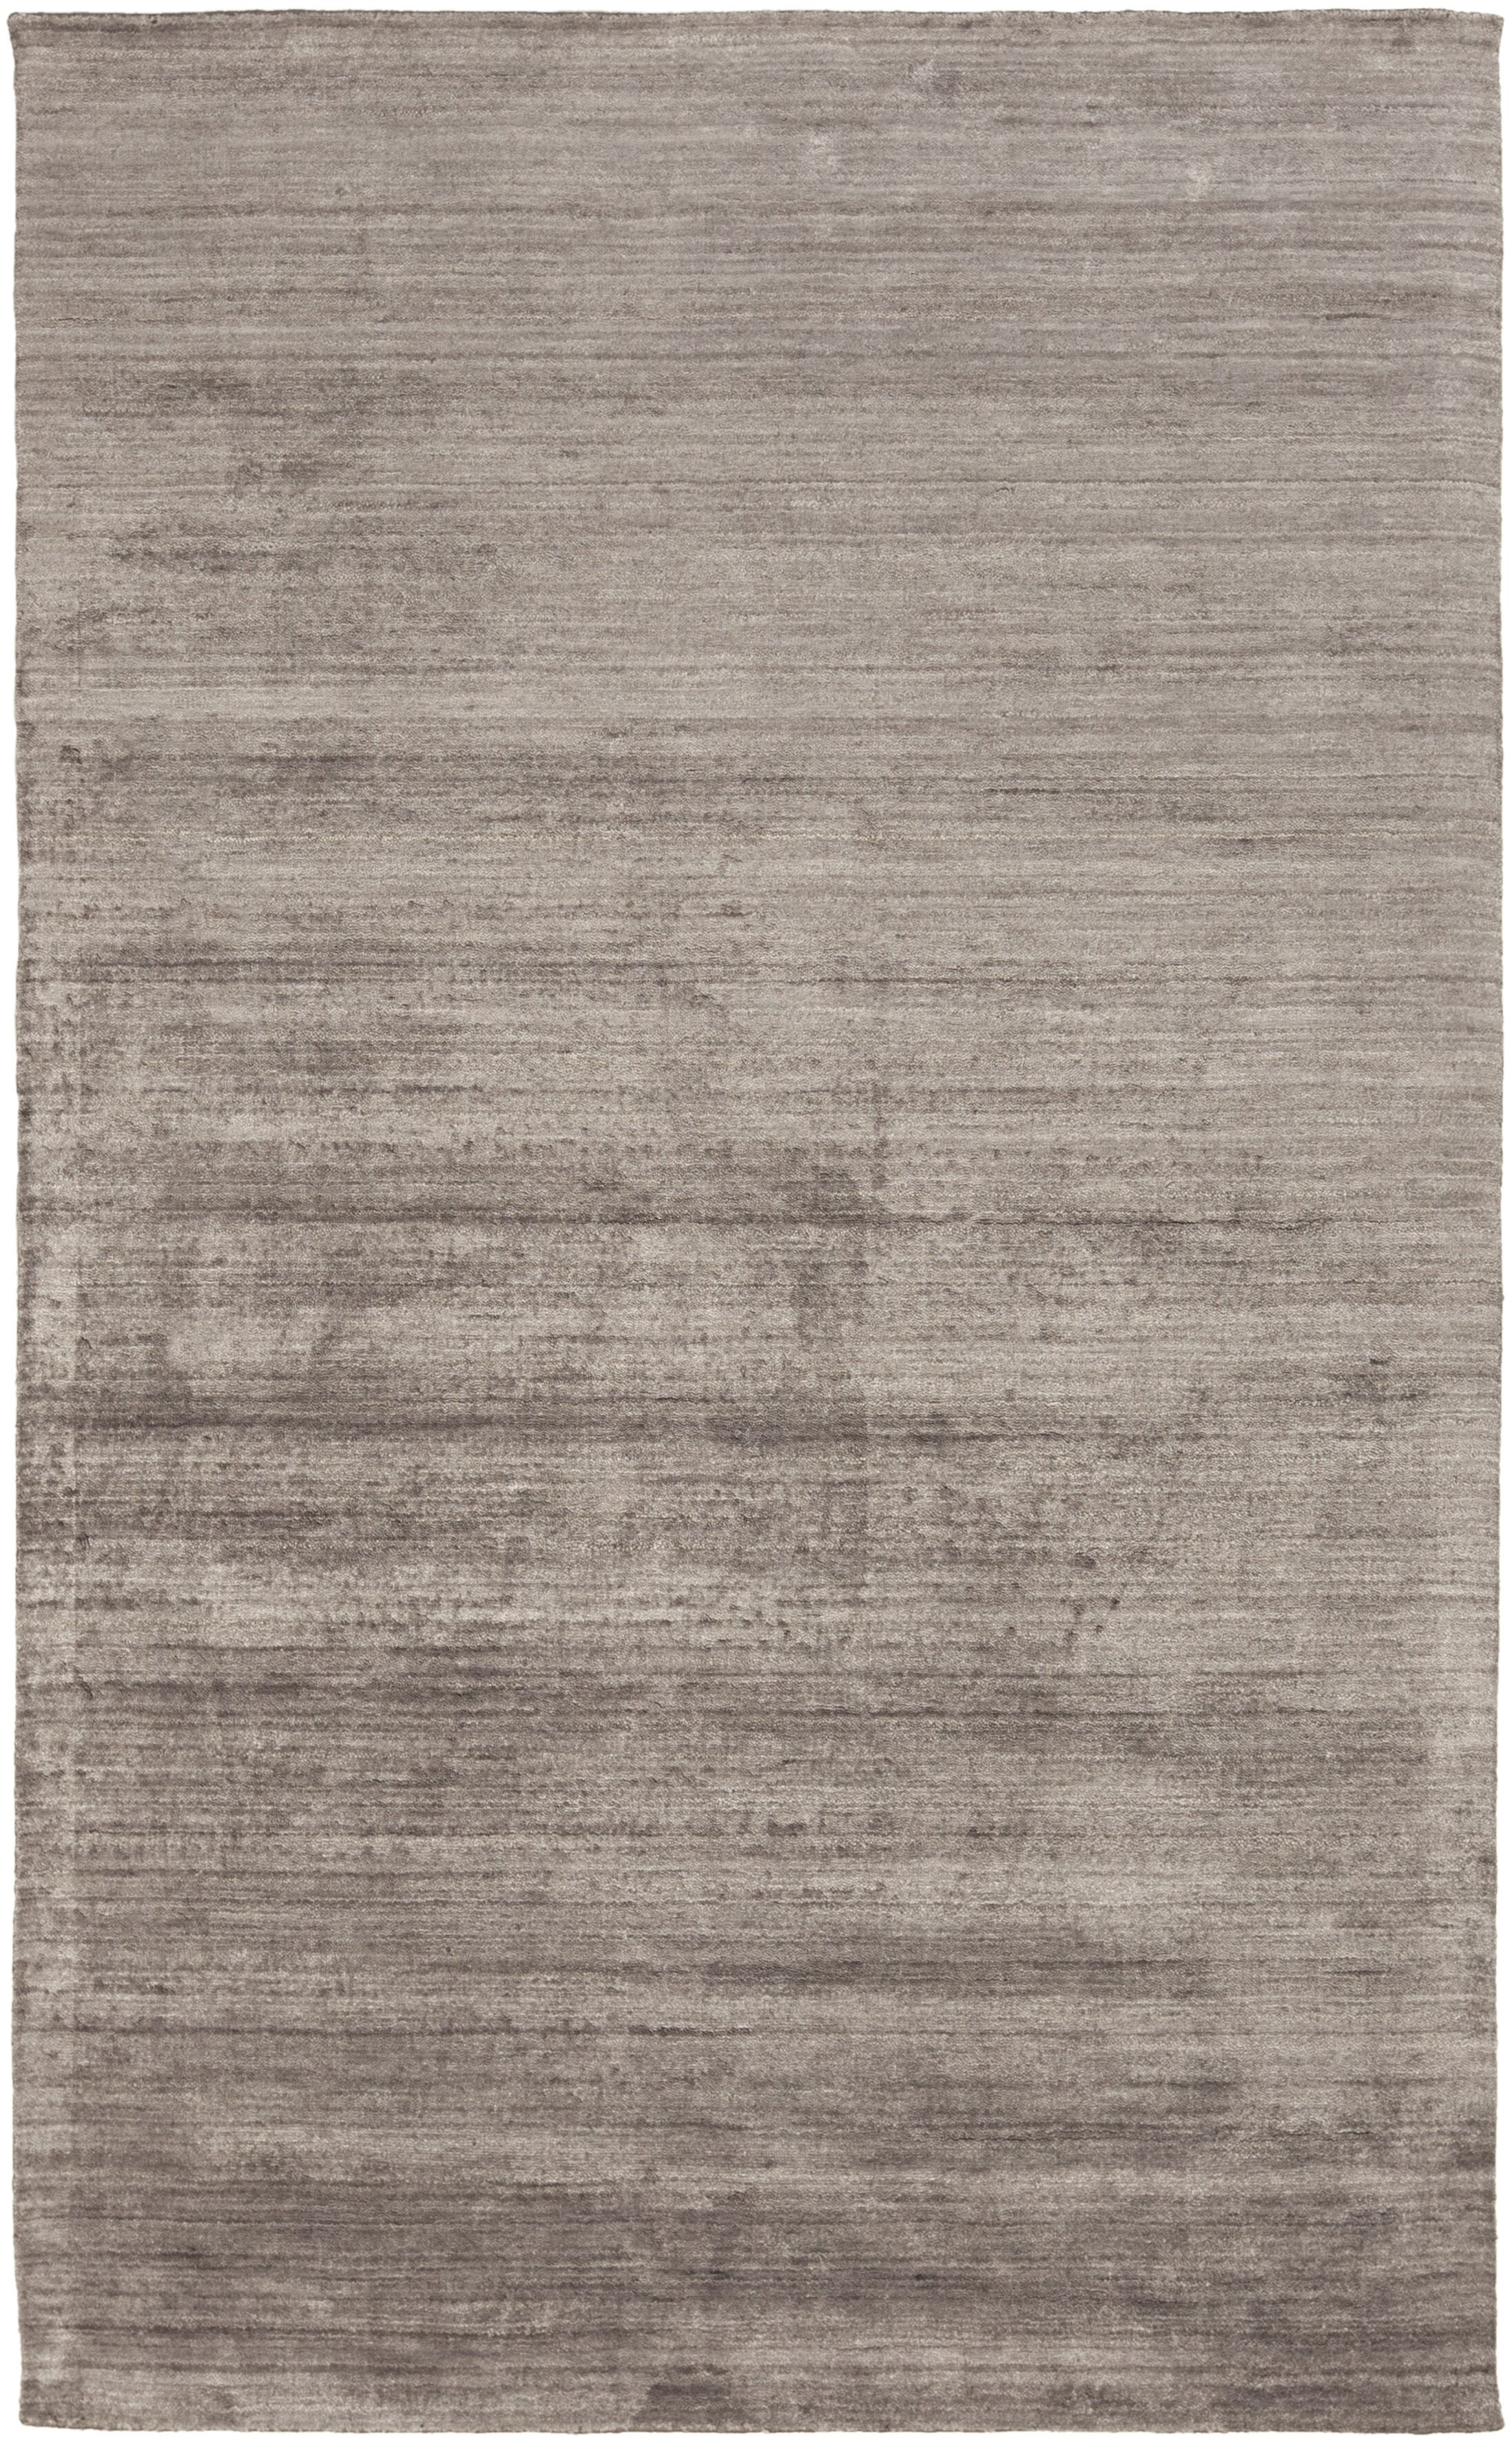 Oxendine Gray Area Rug Rug Size: Rectangle 4' x 6'